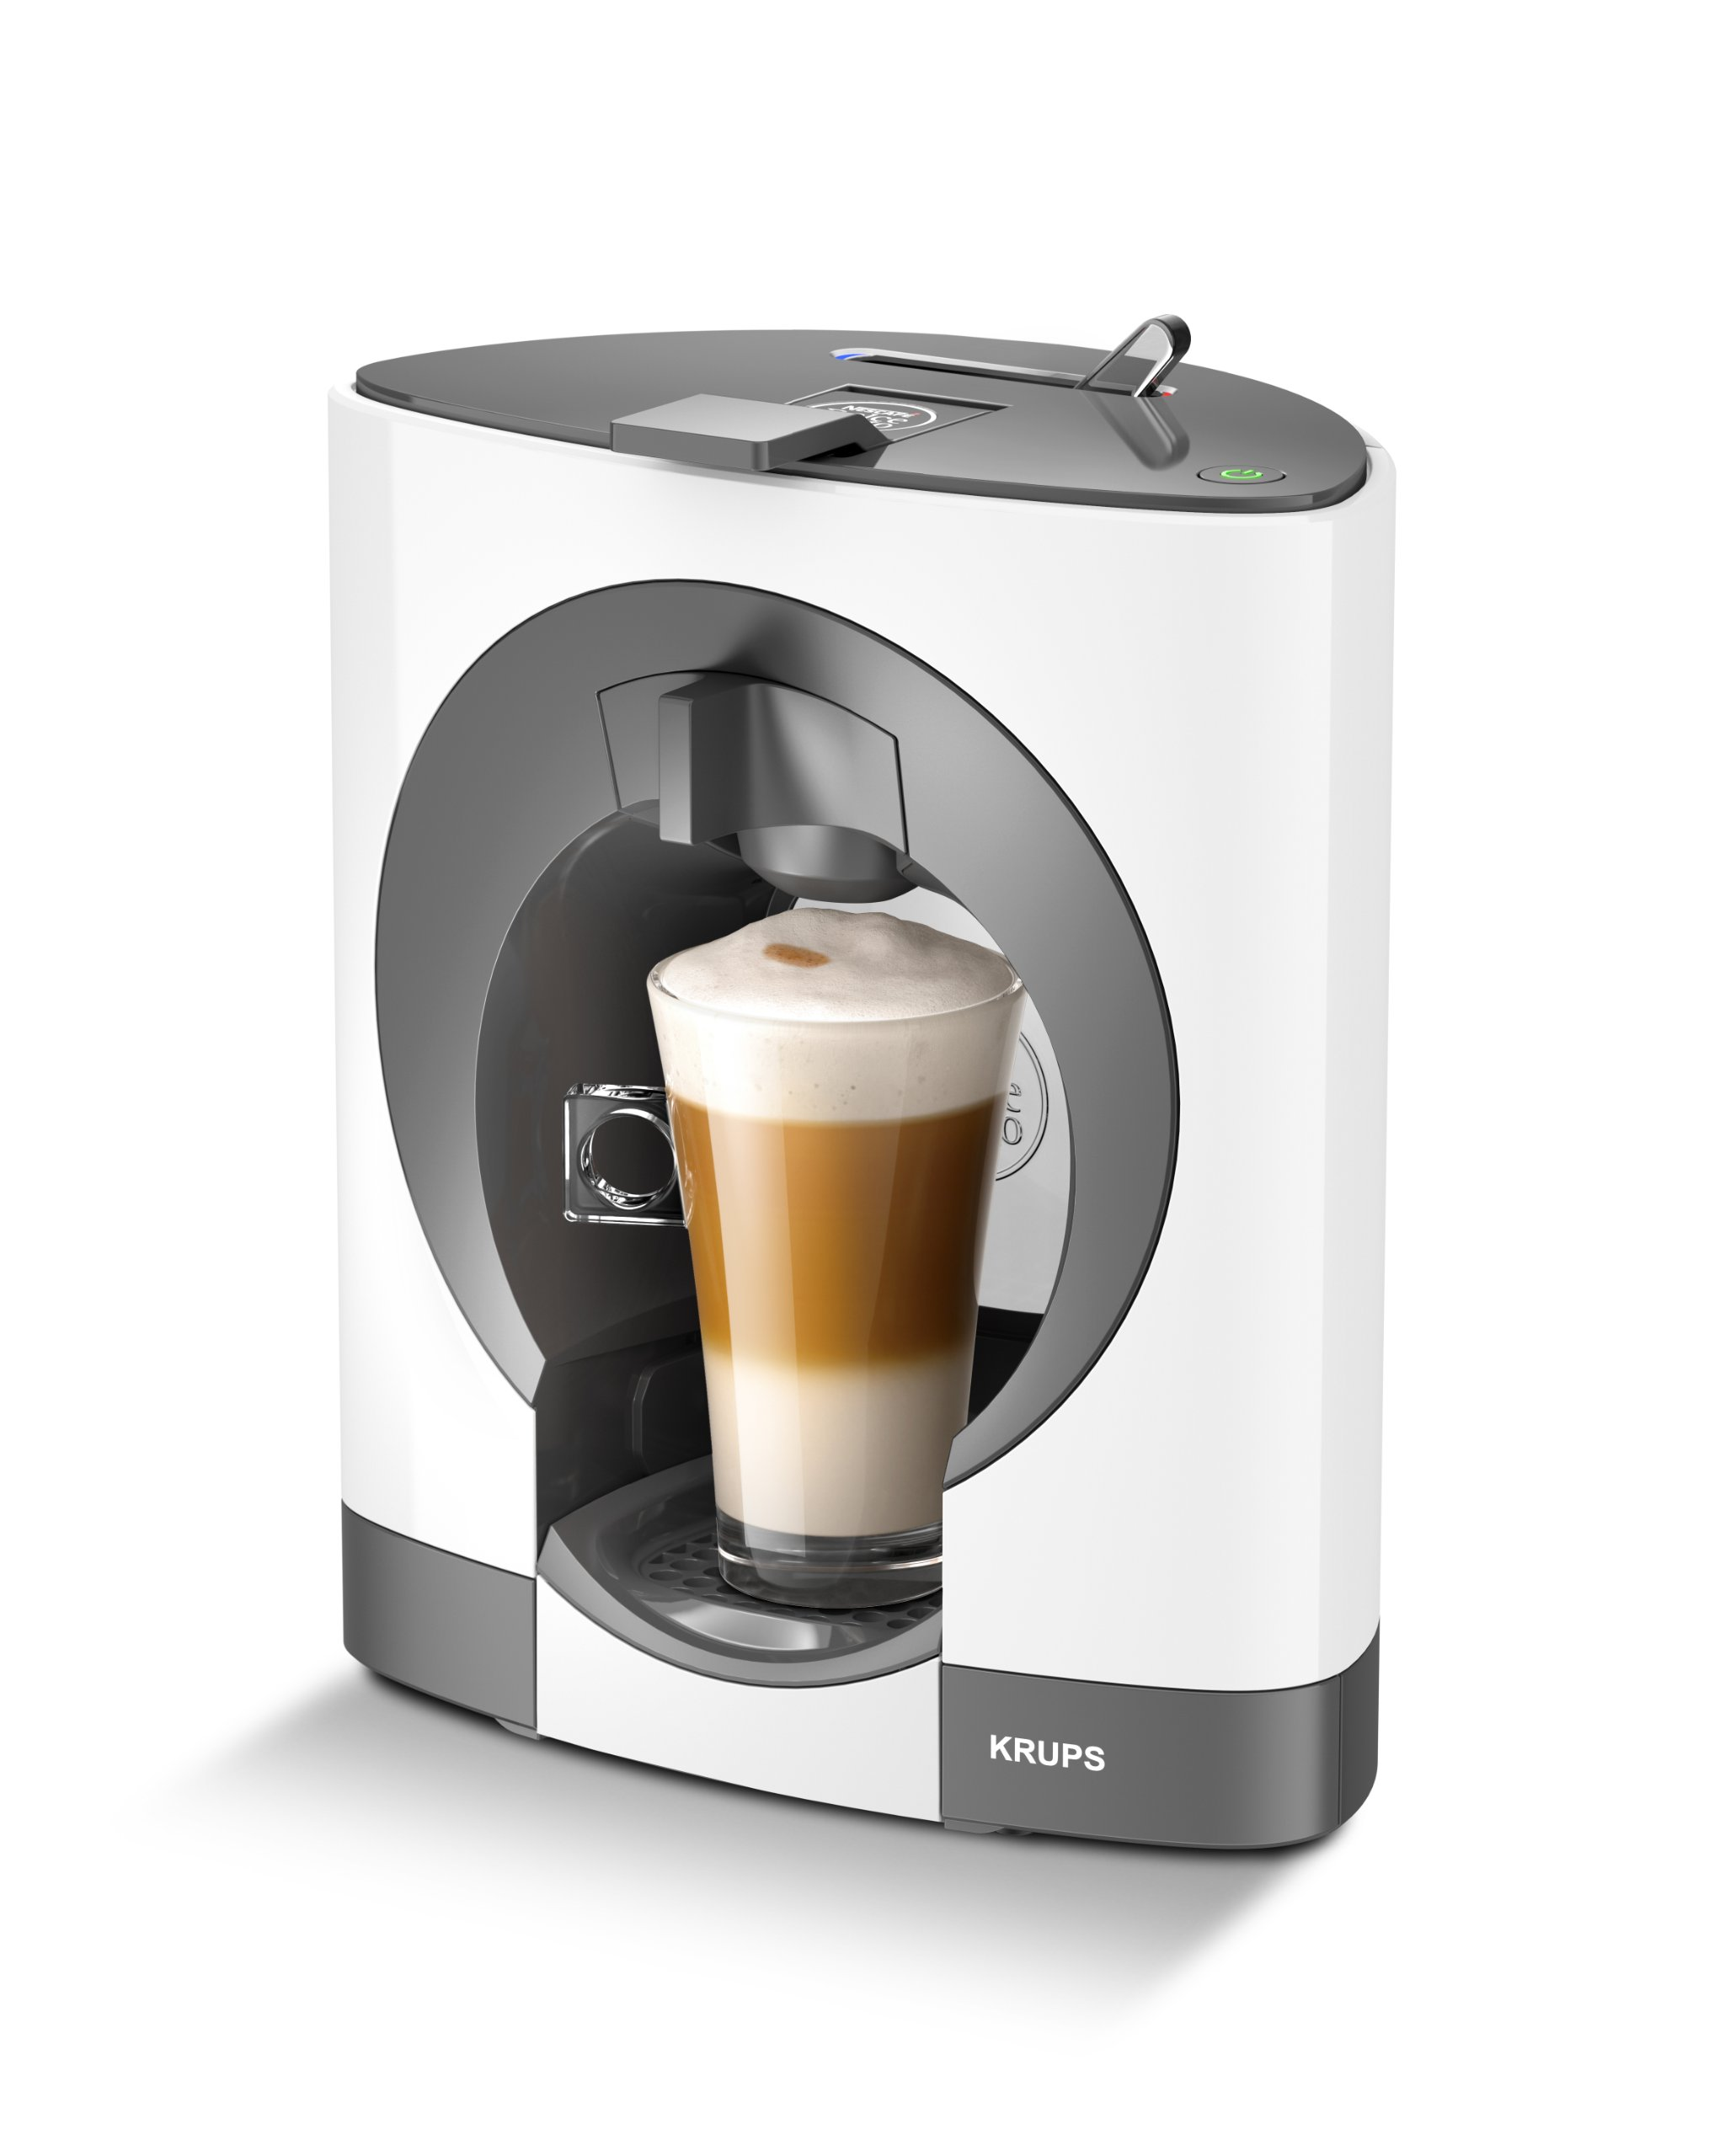 Brand new nescafe dolce gusto oblo coffee capsule machine by krups white - Presentoir capsule dolce gusto ...